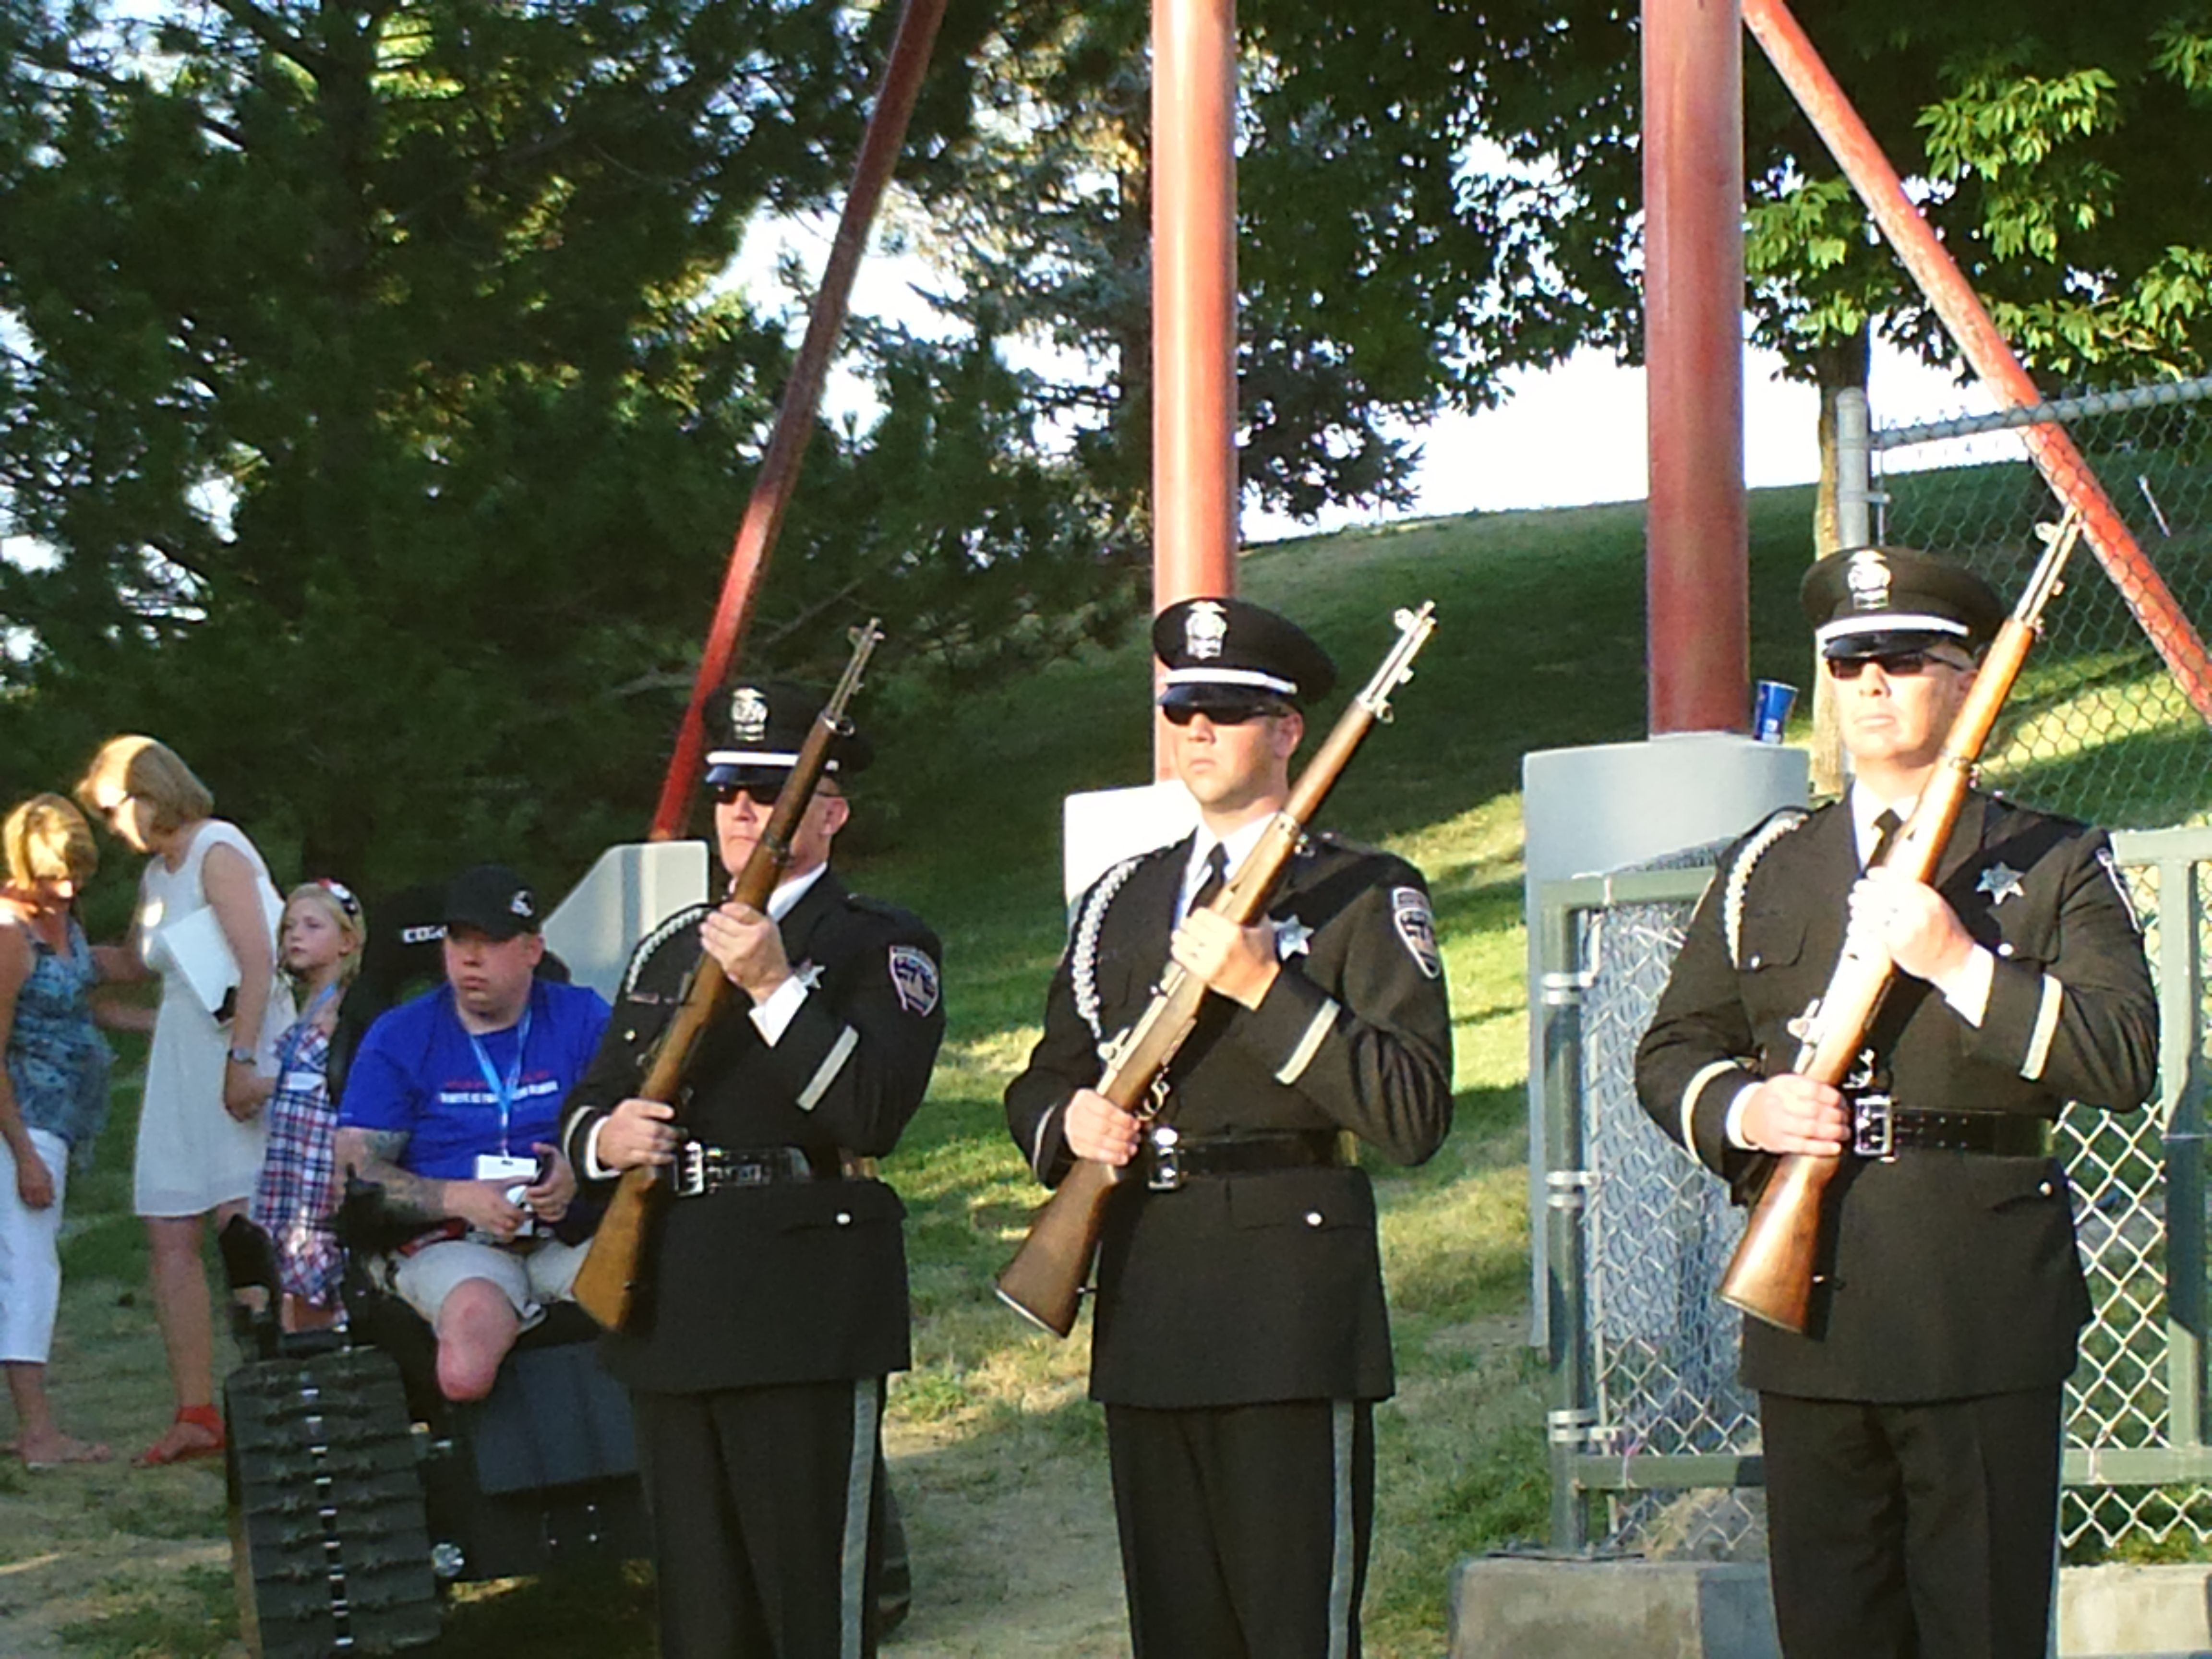 PT NAMPA IDAHO. 21 GUN SALUTE GUYS WAIT FOR THE FLAG TO COME OFF THE STAGE. JULY 2015